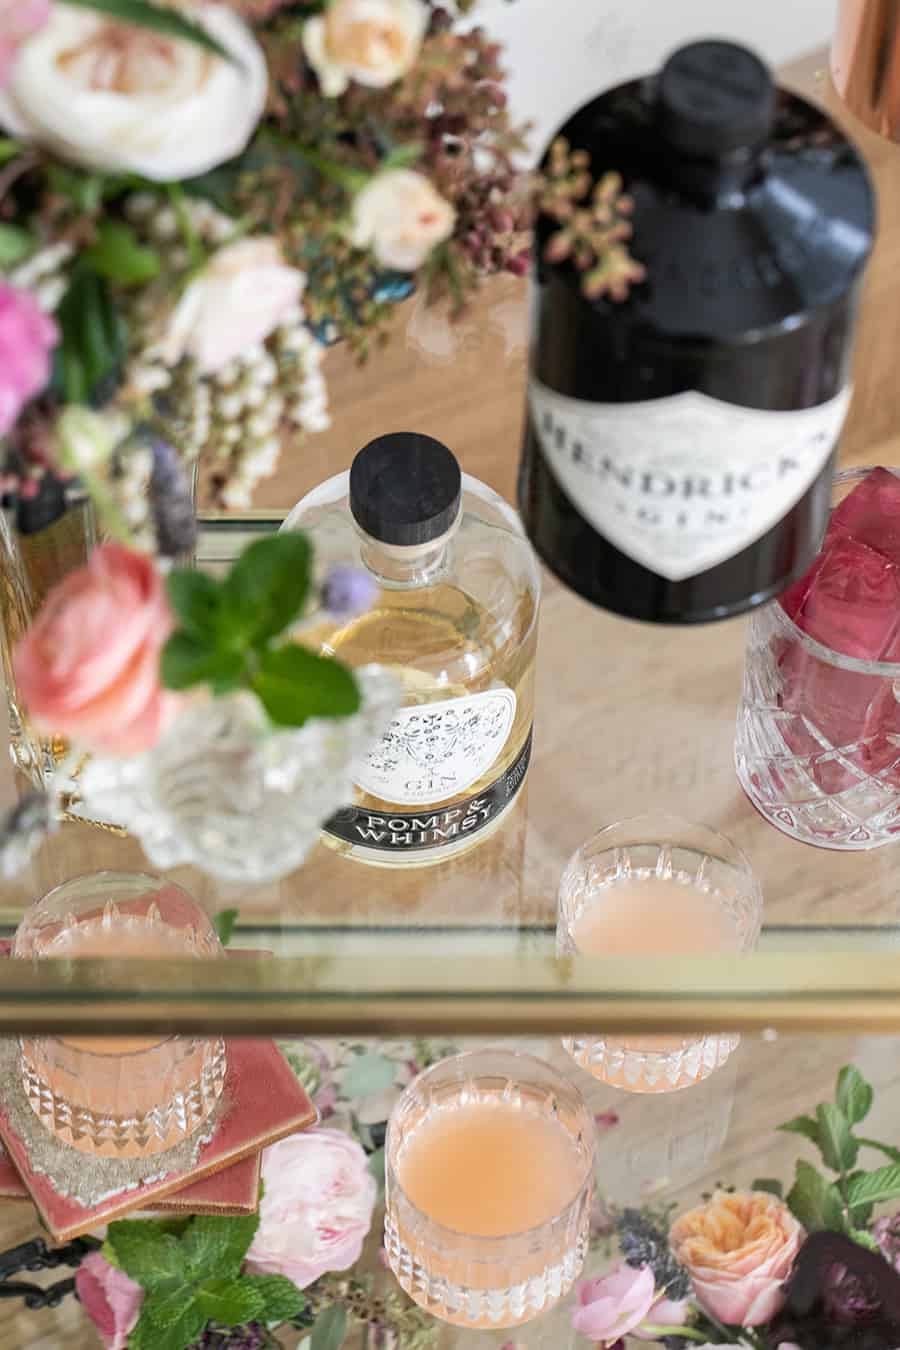 Gin on a gold bar for a Gin and Flower Bar